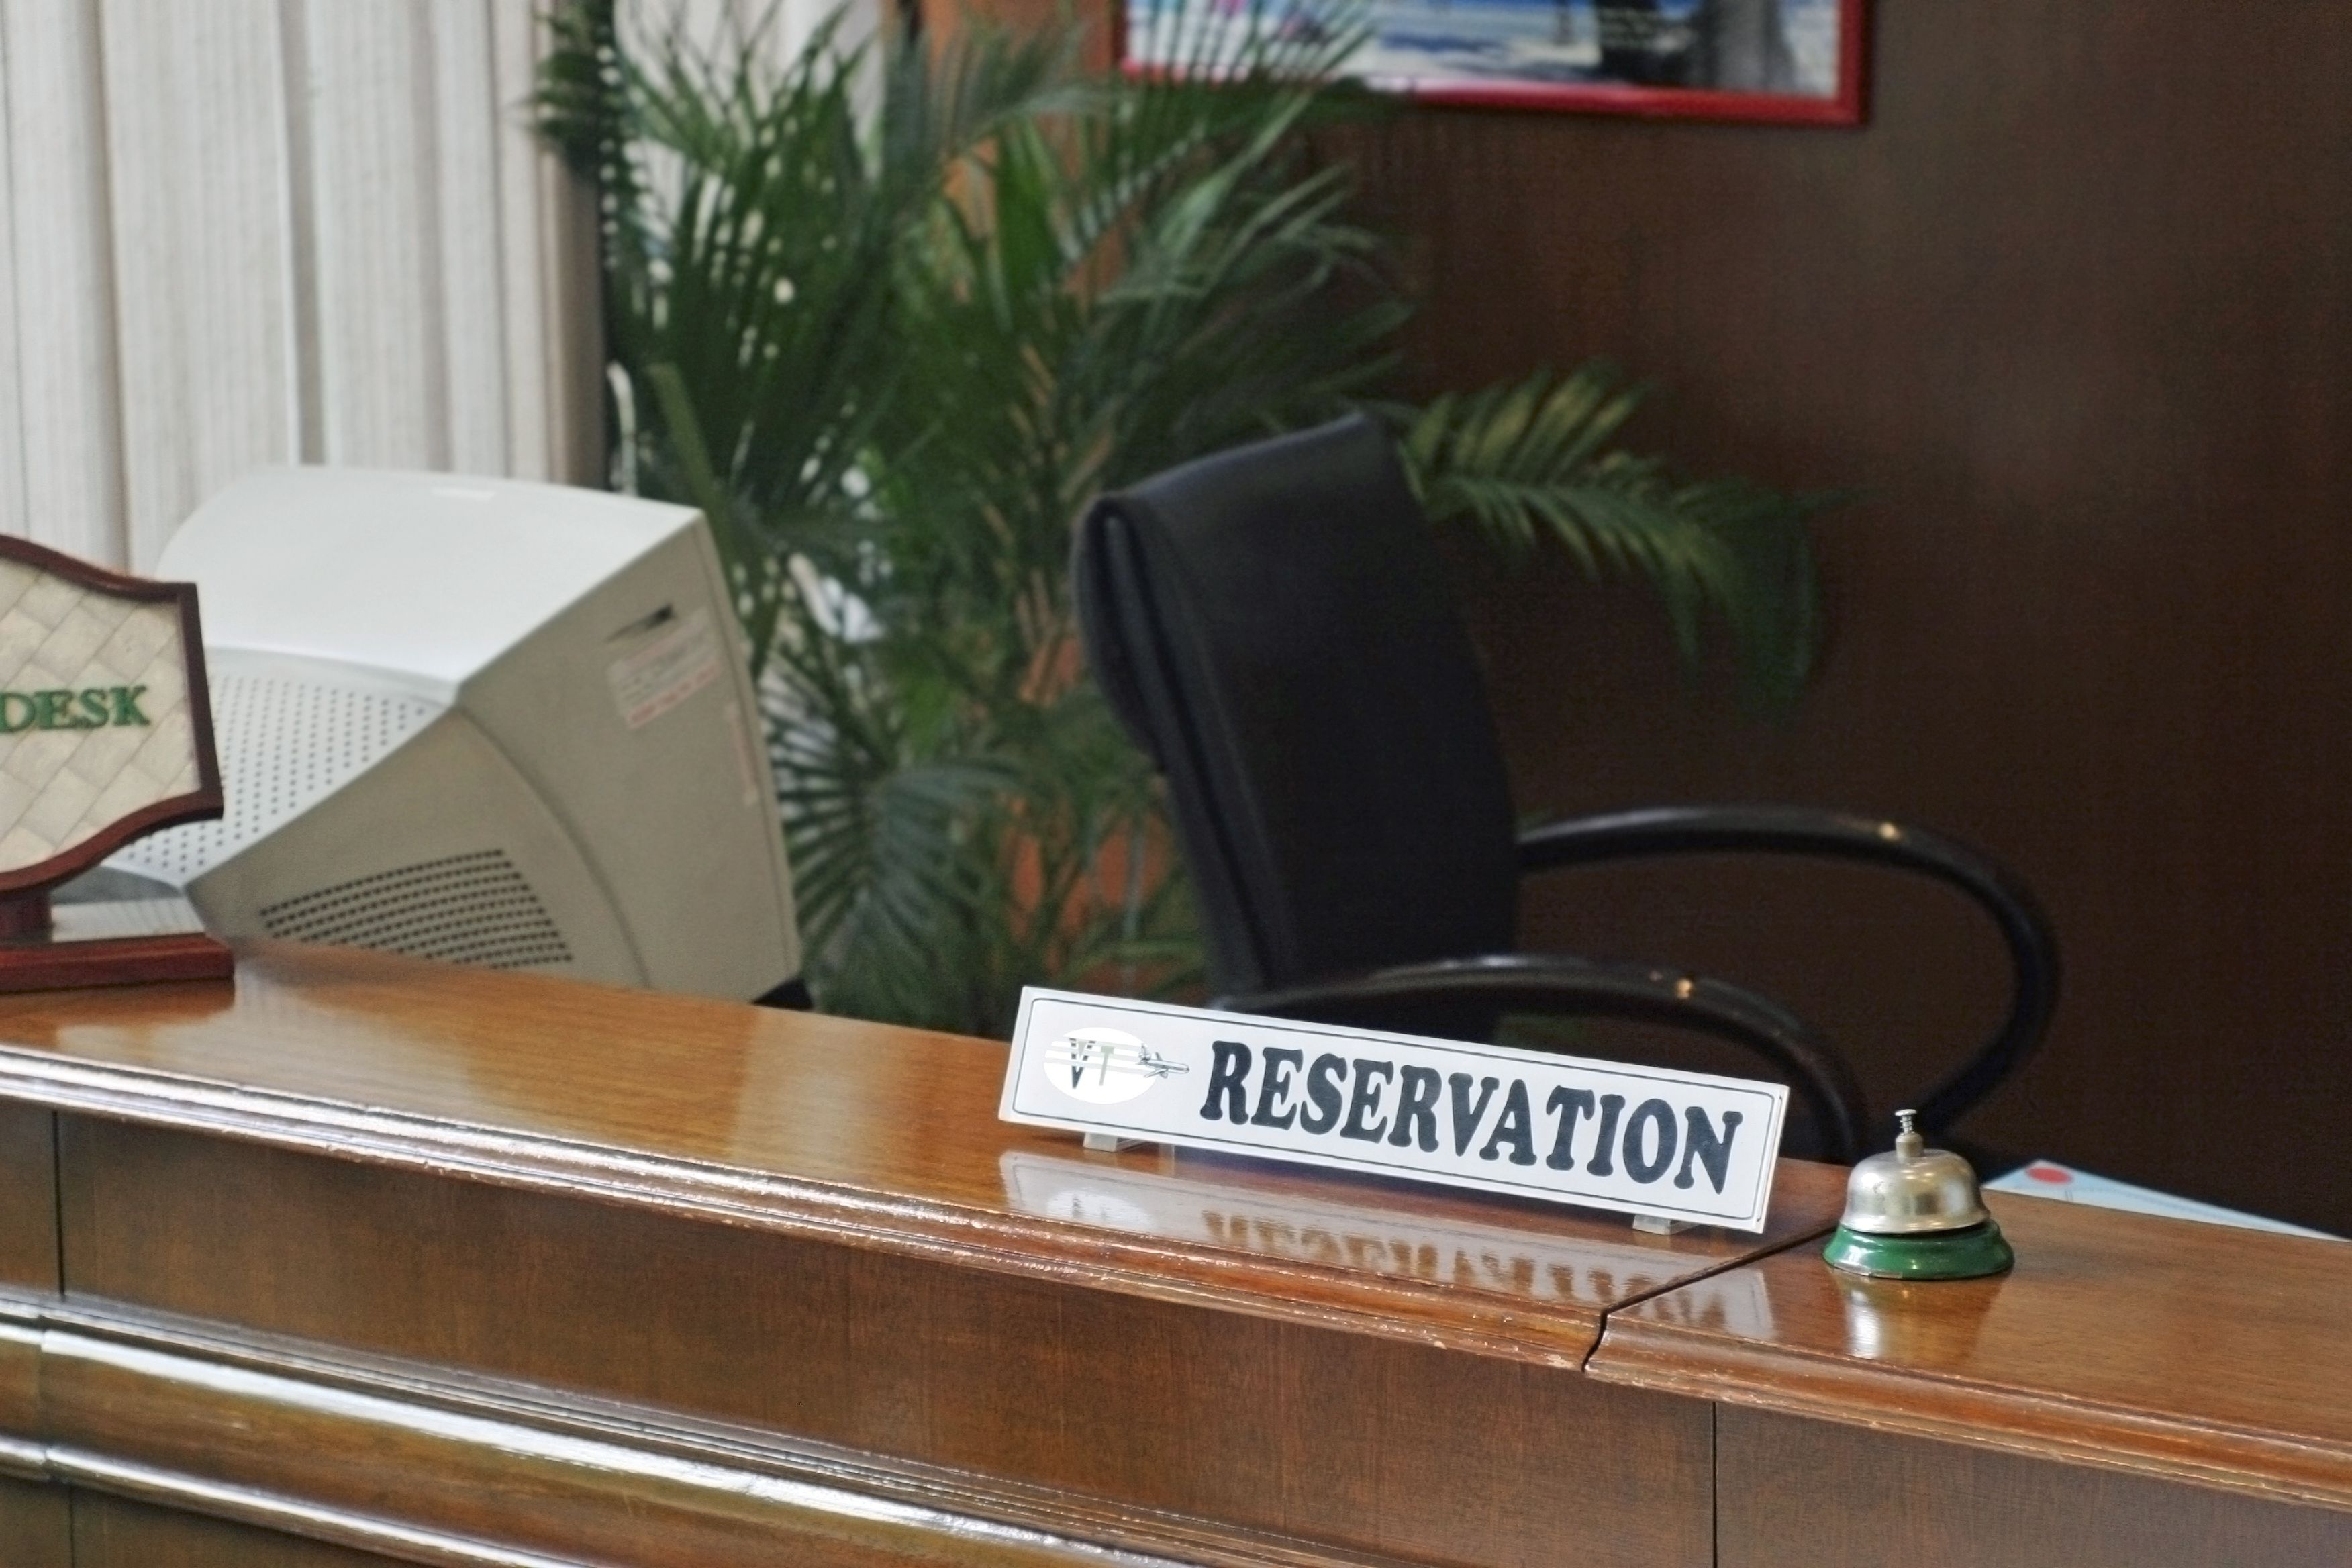 What to expect when using priceline hotel reservations for Reservation hotel